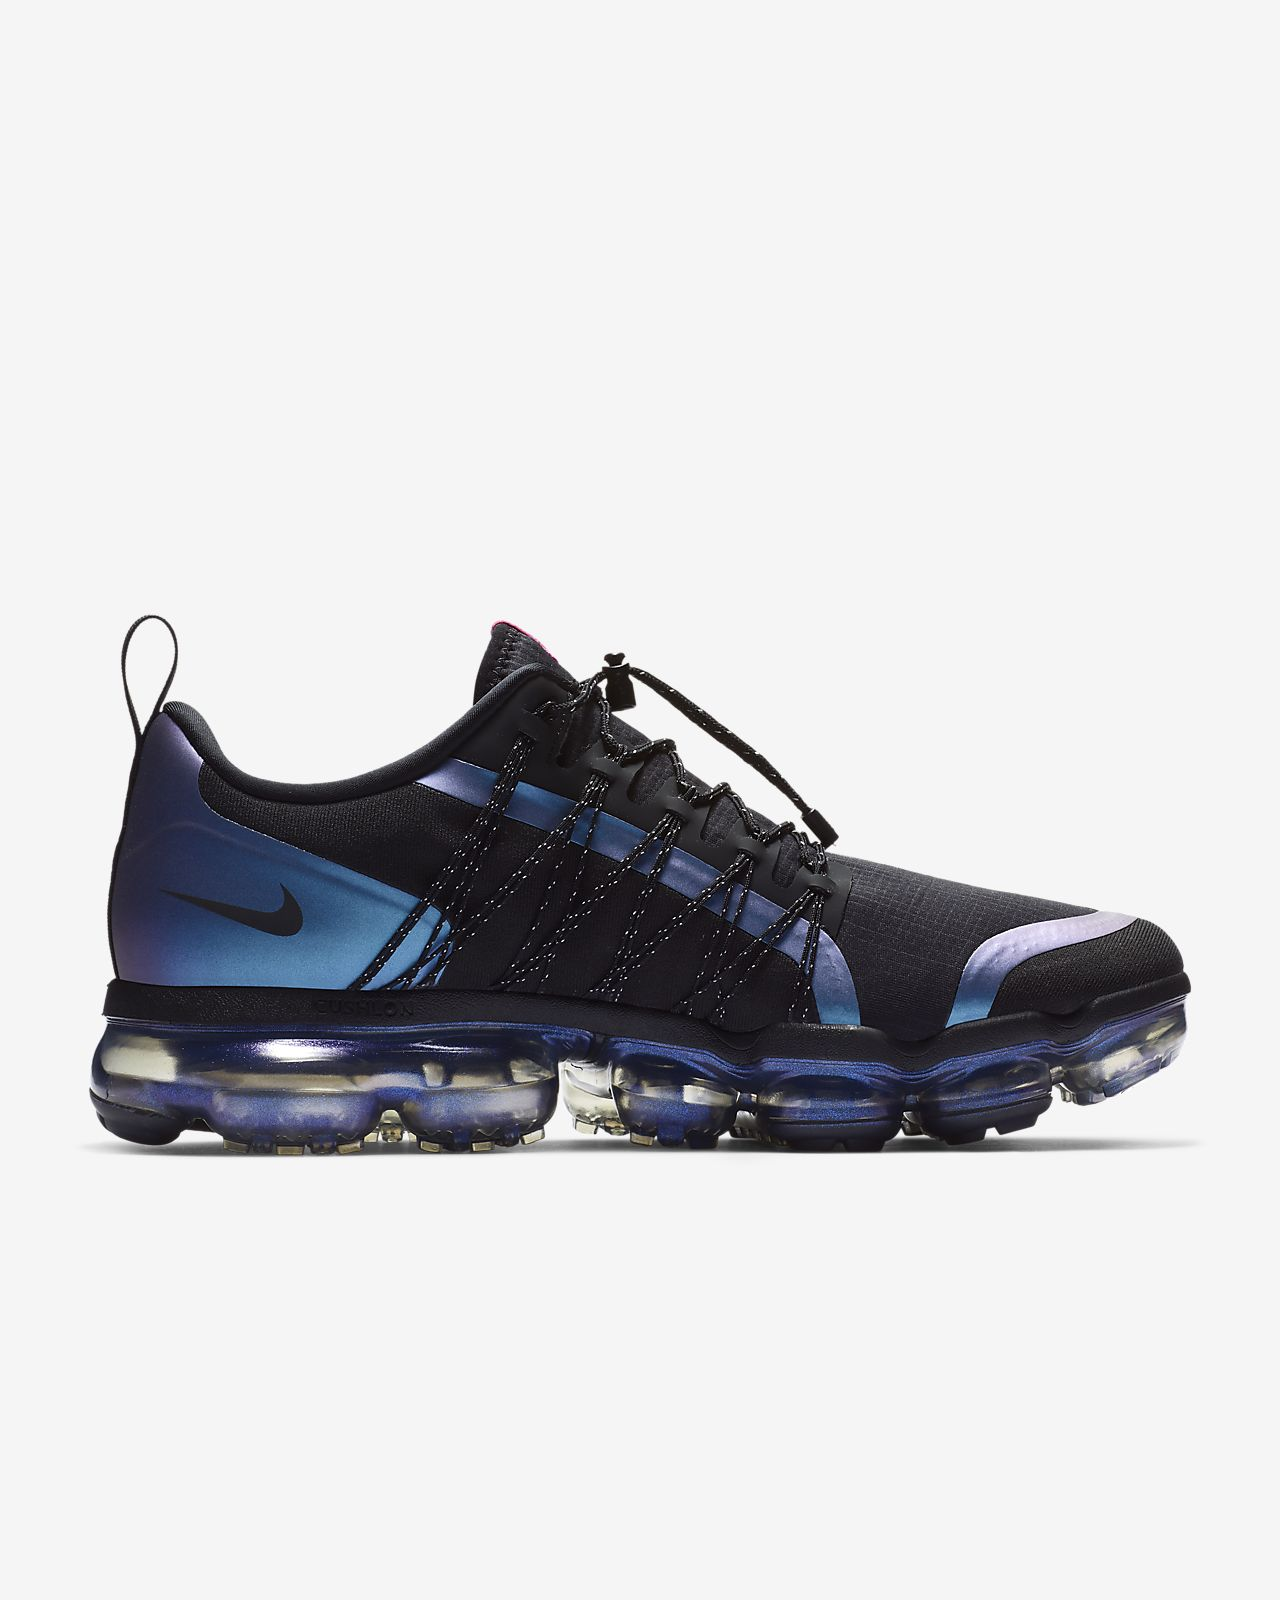 642d2f7008 Nike Air VaporMax Utility Men's Shoe. Nike.com GB